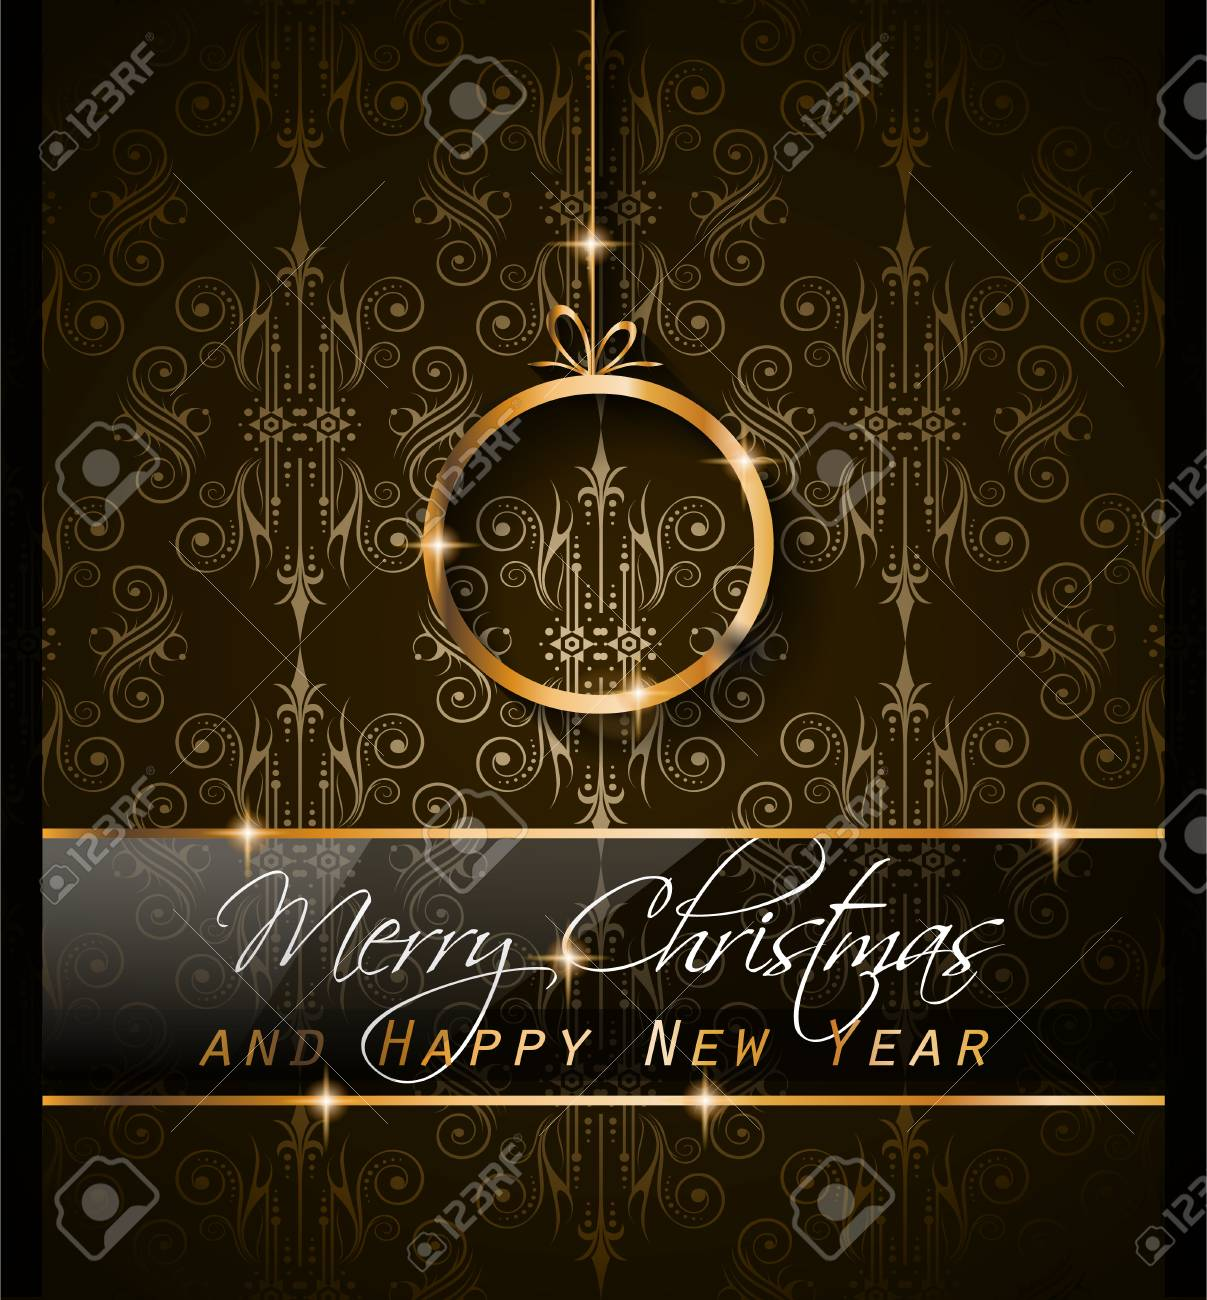 2016 new year and happy christmas background for your flyers 2016 new year and happy christmas background for your flyers invitation party posters stopboris Gallery